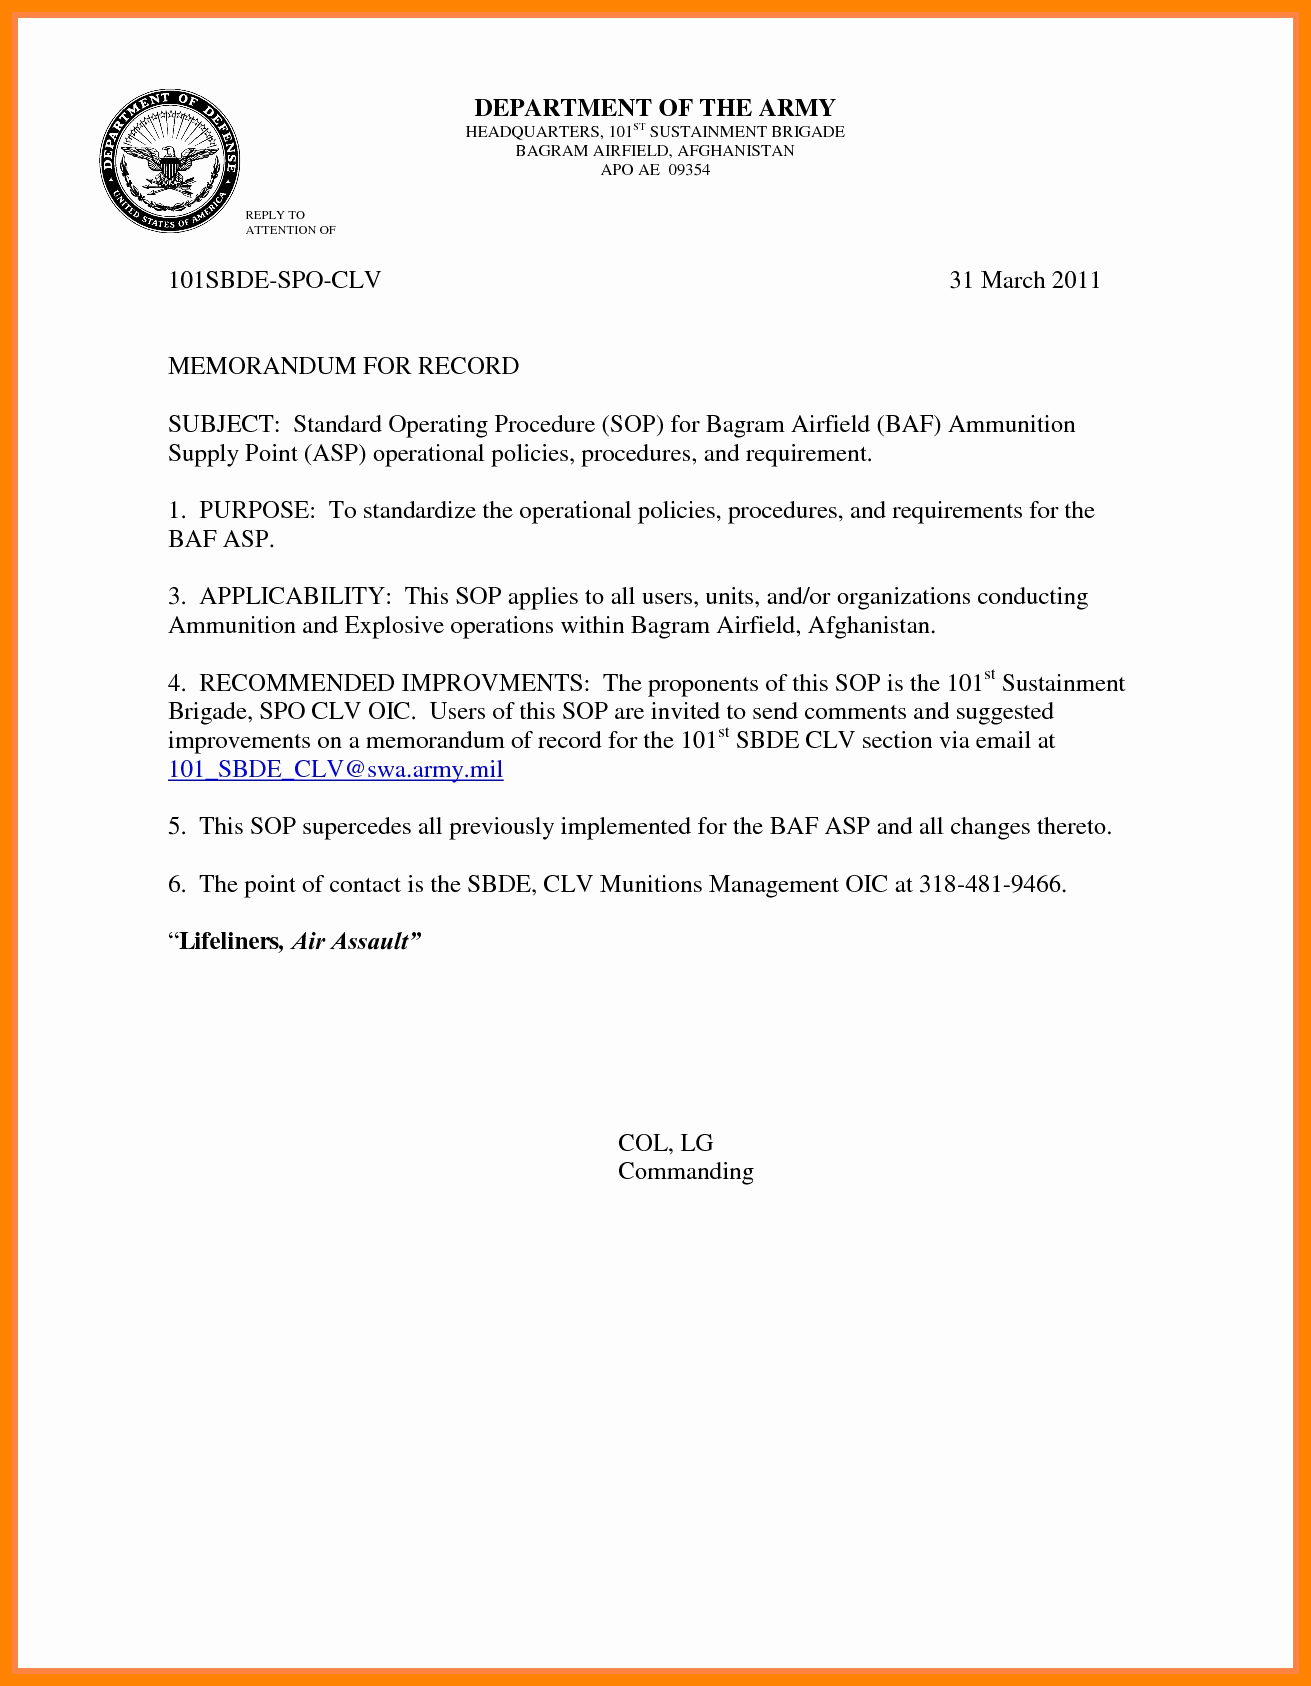 Memorandum for Record Template Luxury 1 2 Memorandum for Record Army Example Wlc